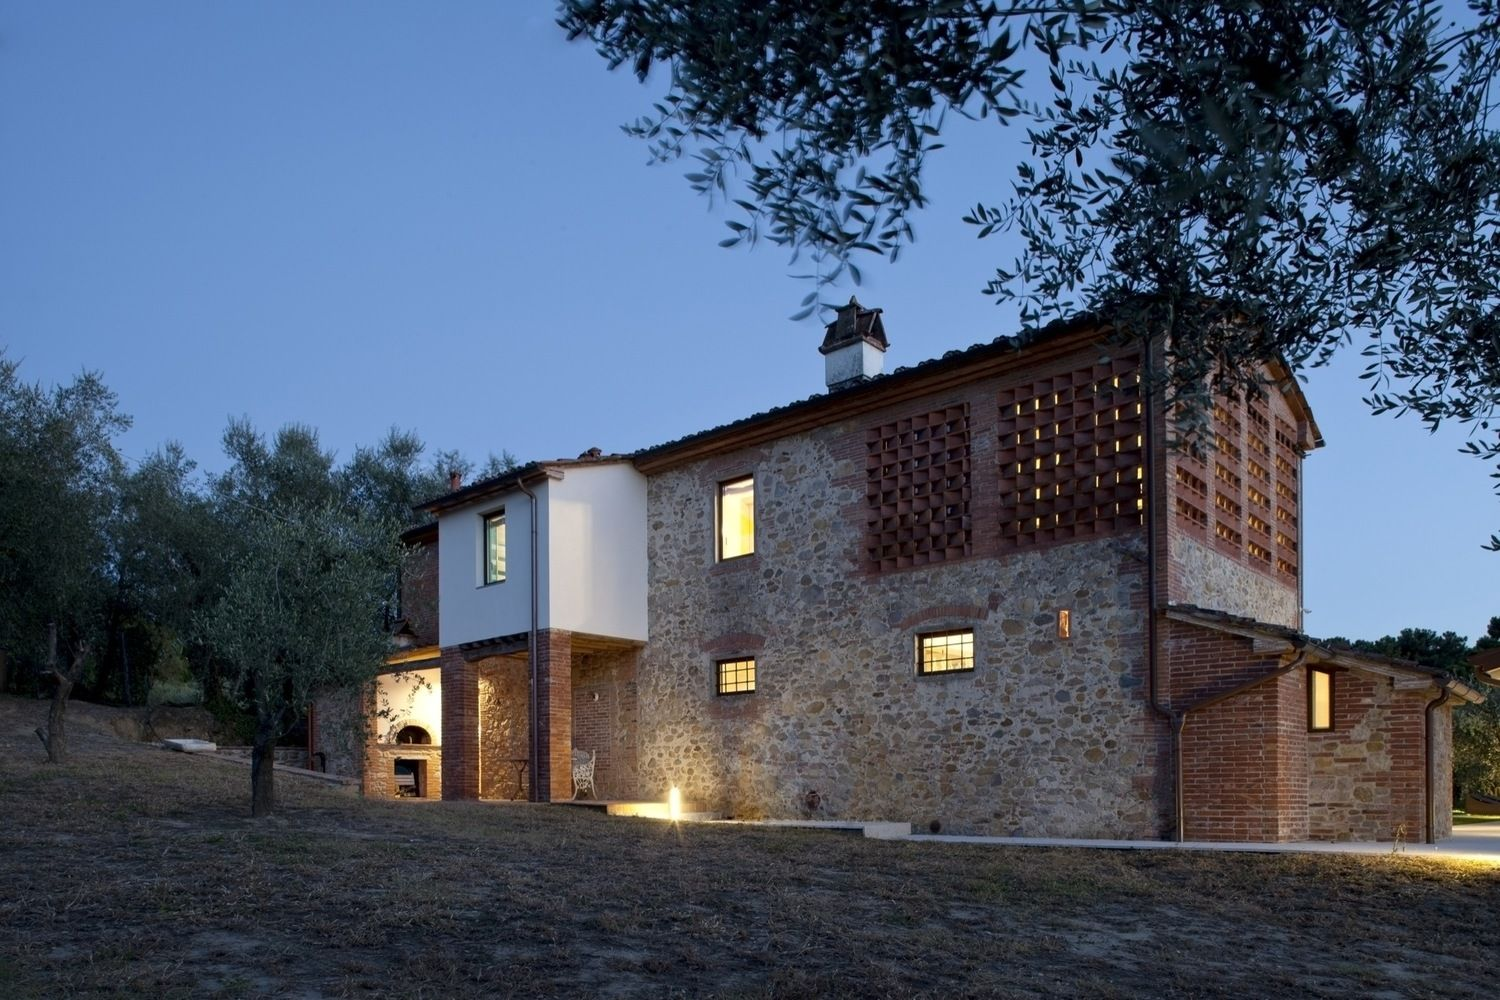 Gallery of Country House Renovation / Mide Architetti - 13